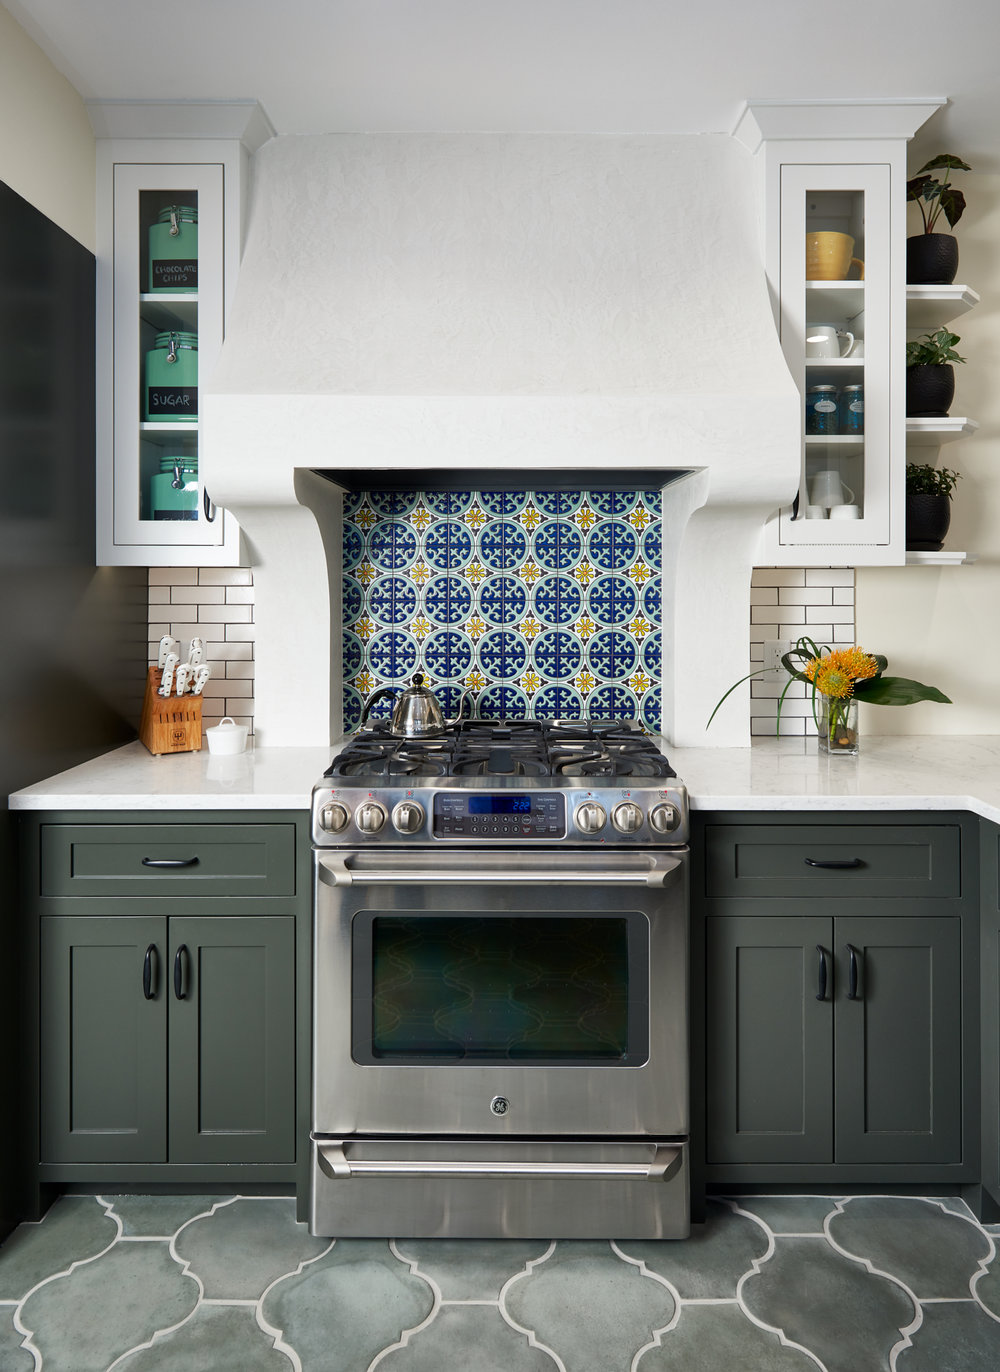 Custom tile in kitchen designed by NewStudio Architecture